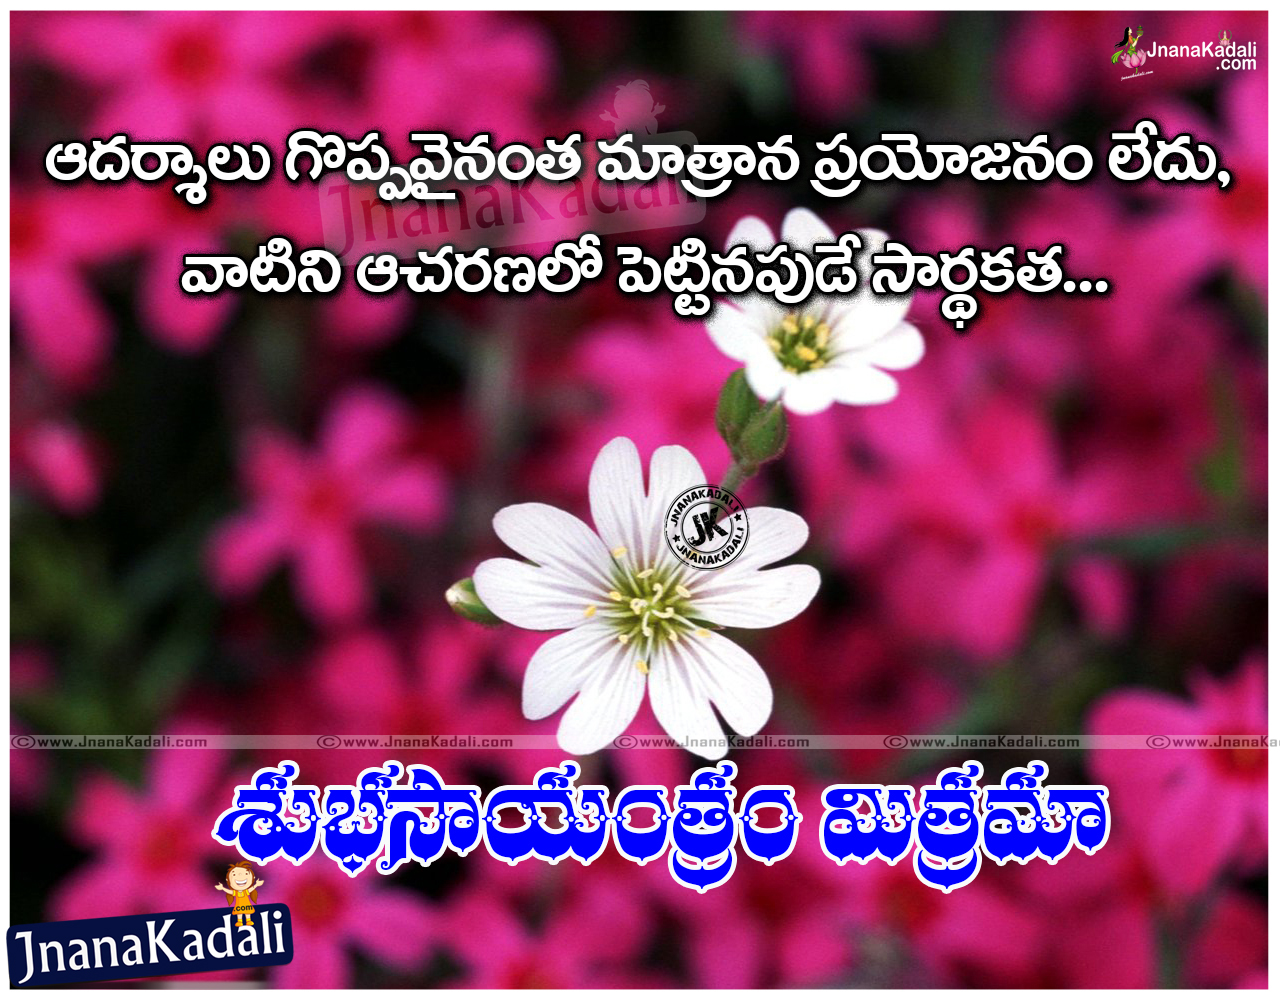 Best good evening quotes in telugu with beautiful hd flower best face book good evenin quotations in telugu good evening quotes in telugu telugu good evening quotes for friends nice good evening telugu quotes for voltagebd Image collections